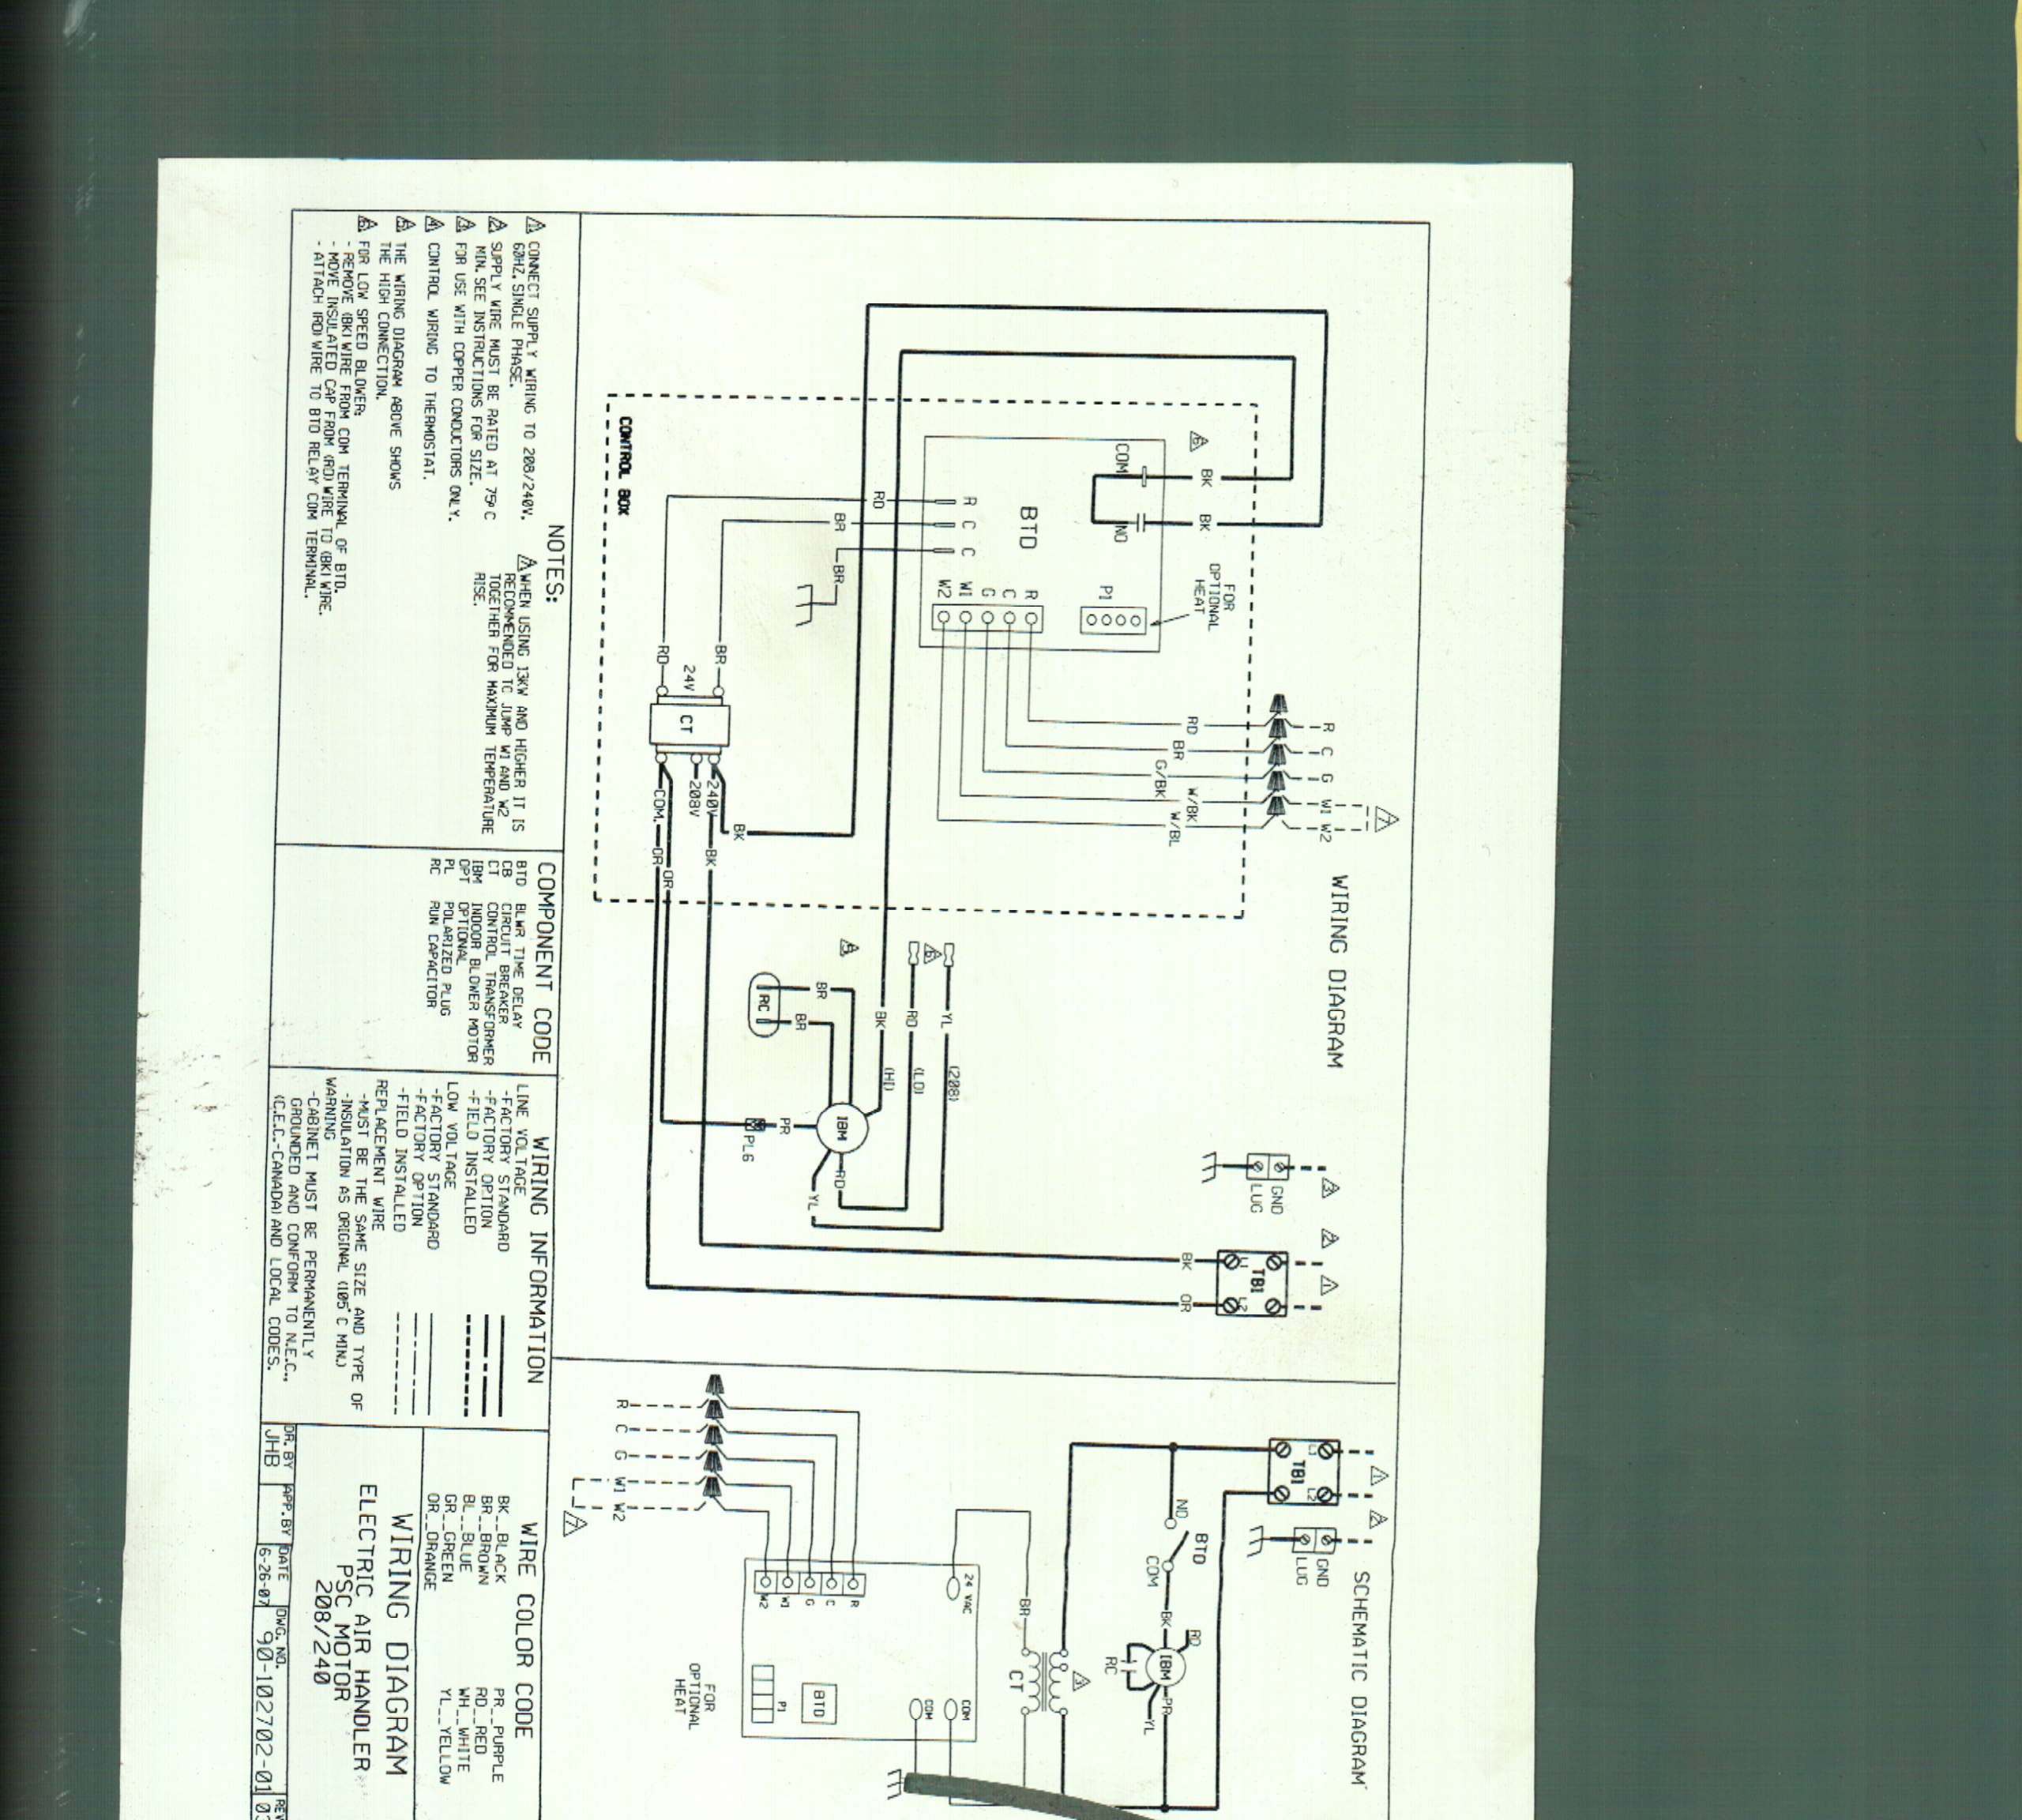 Wiring Diagram For Hunter Thermostat : Hunter thermostat wiring diagram